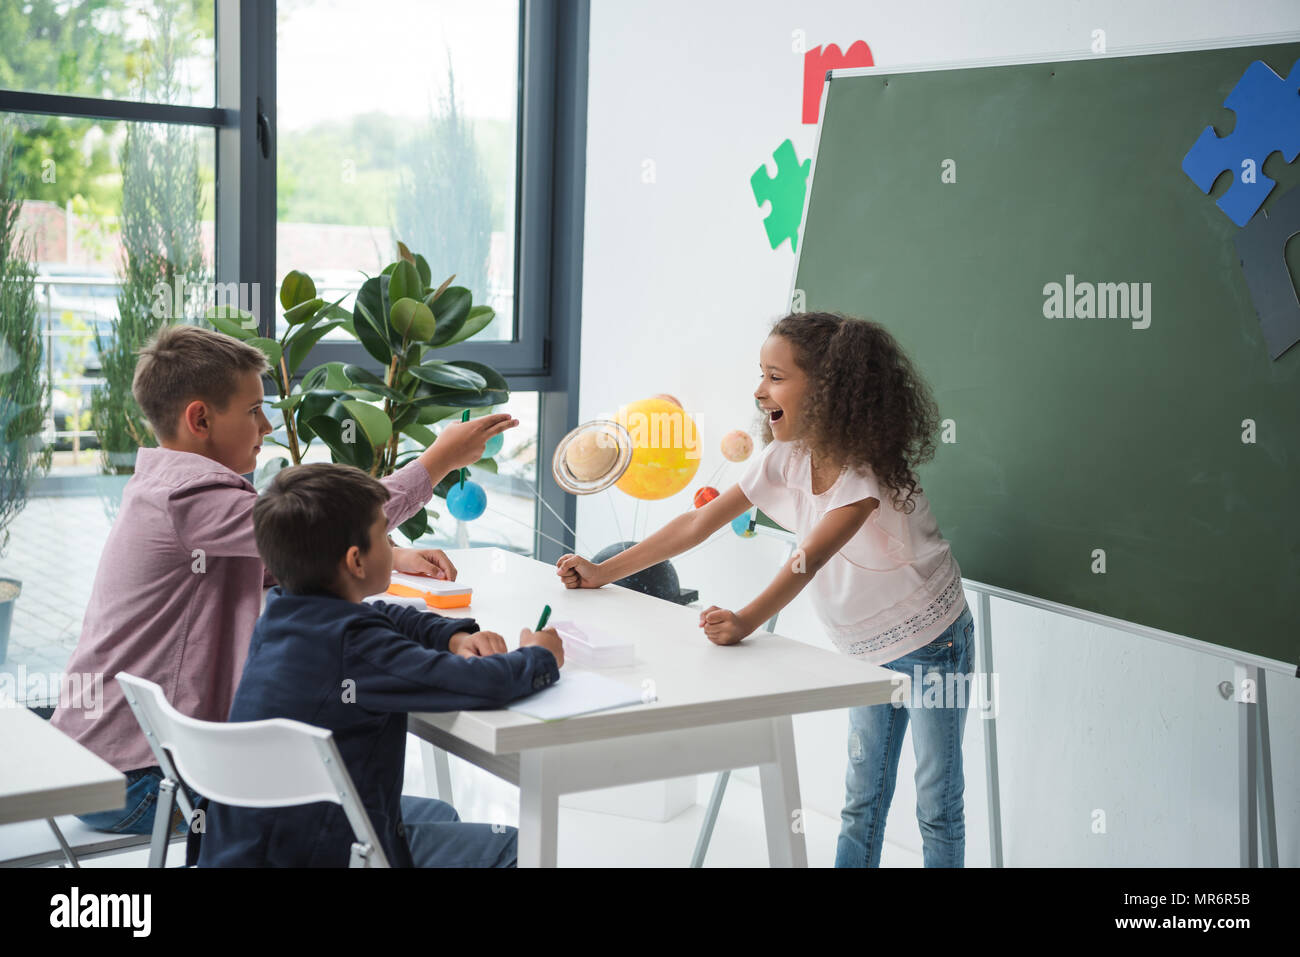 Adorable multiethnic schoolchildren talking and smiling at desk in classroom - Stock Image